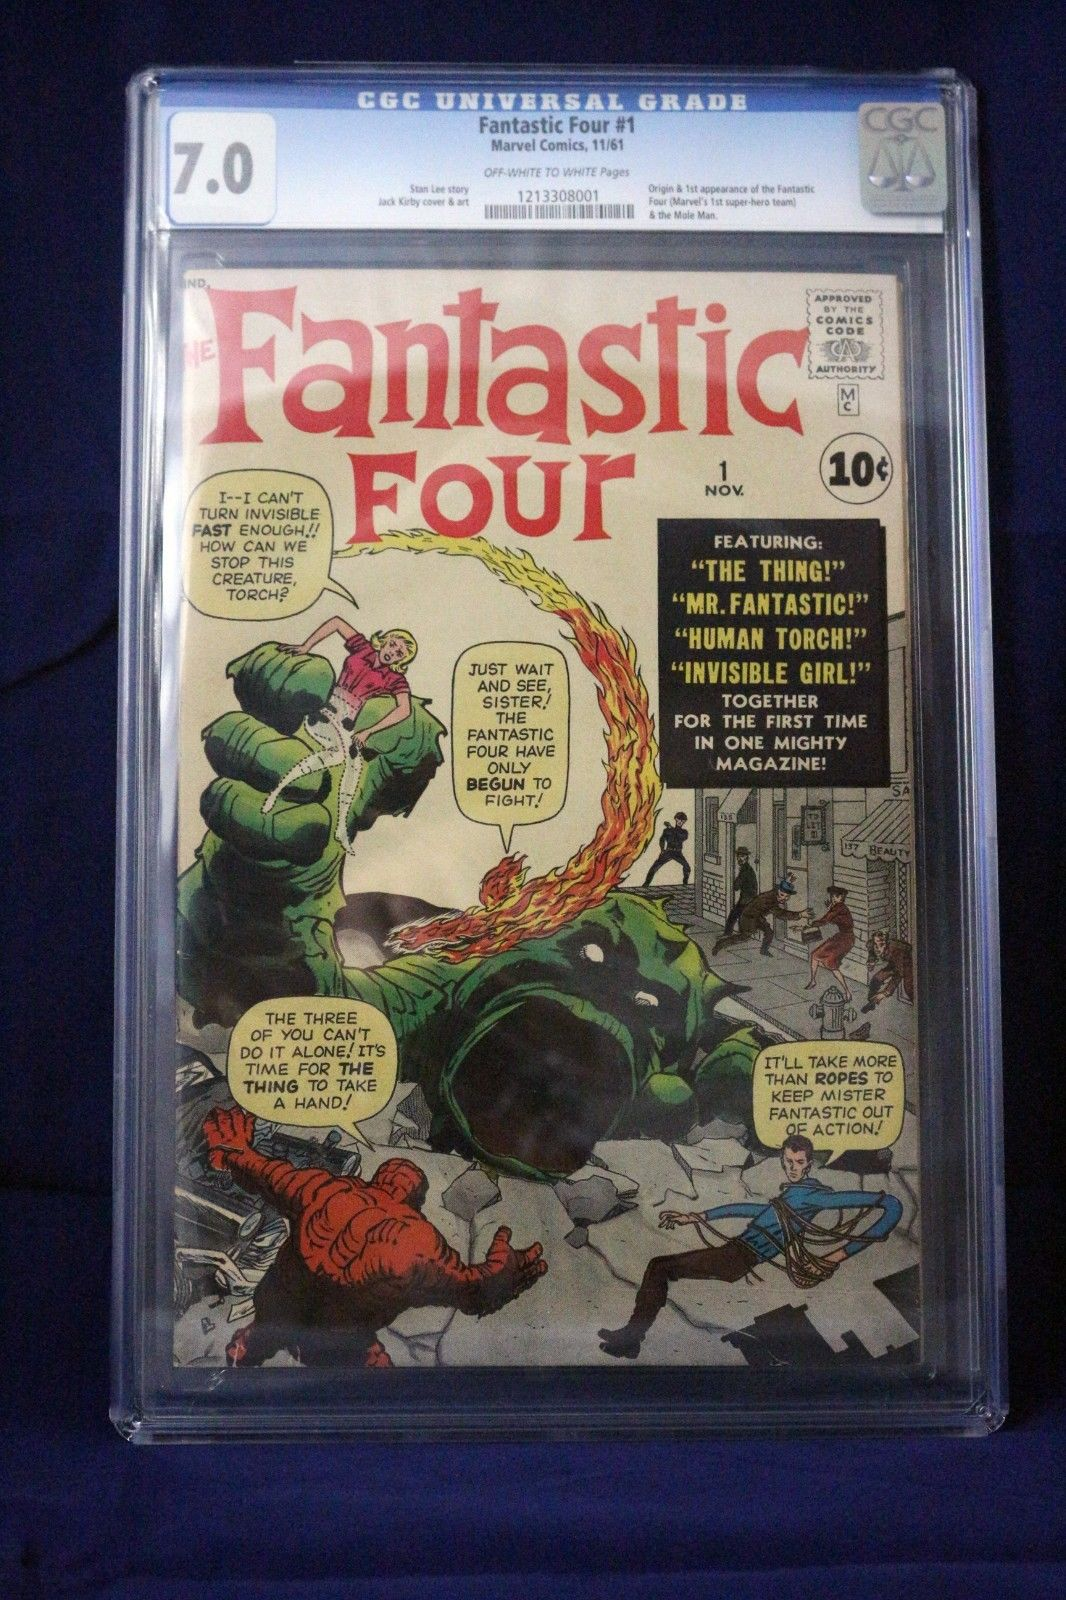 Fantastic Four #1  CGG 7.0 Marvel 1961 1st appearance of the fantastic four